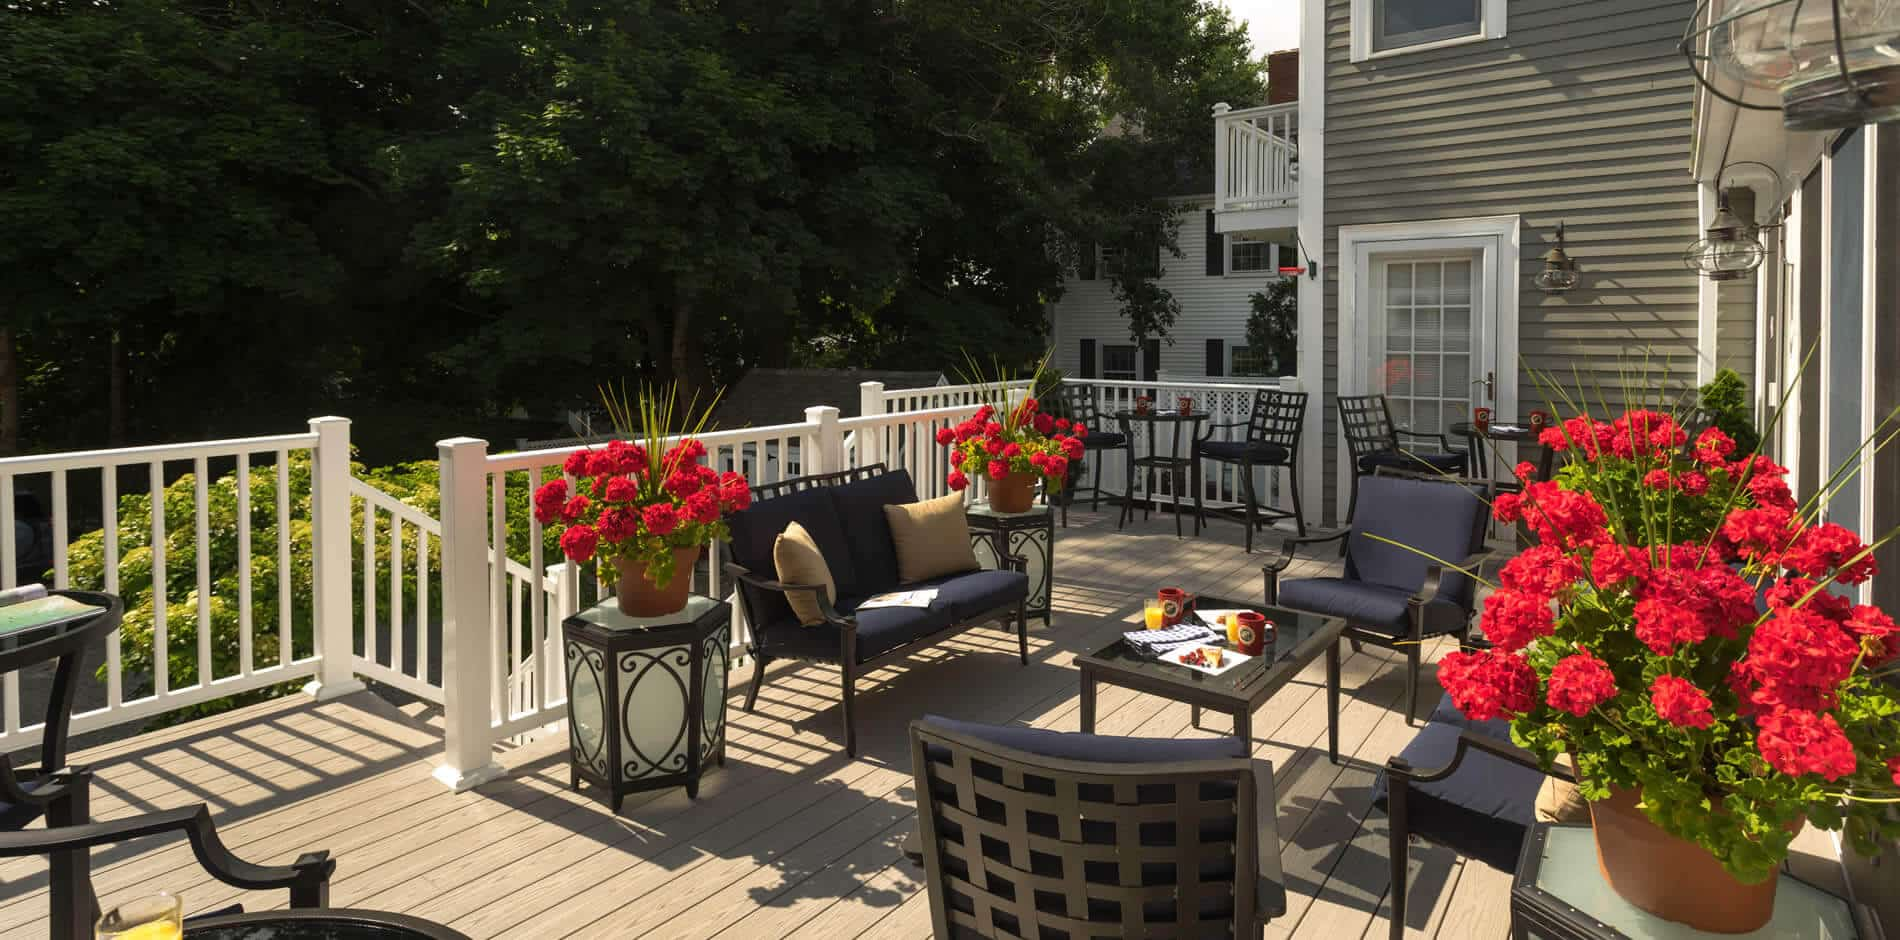 Spacious deck with white railing, dark patio furniture and pots of red flowers